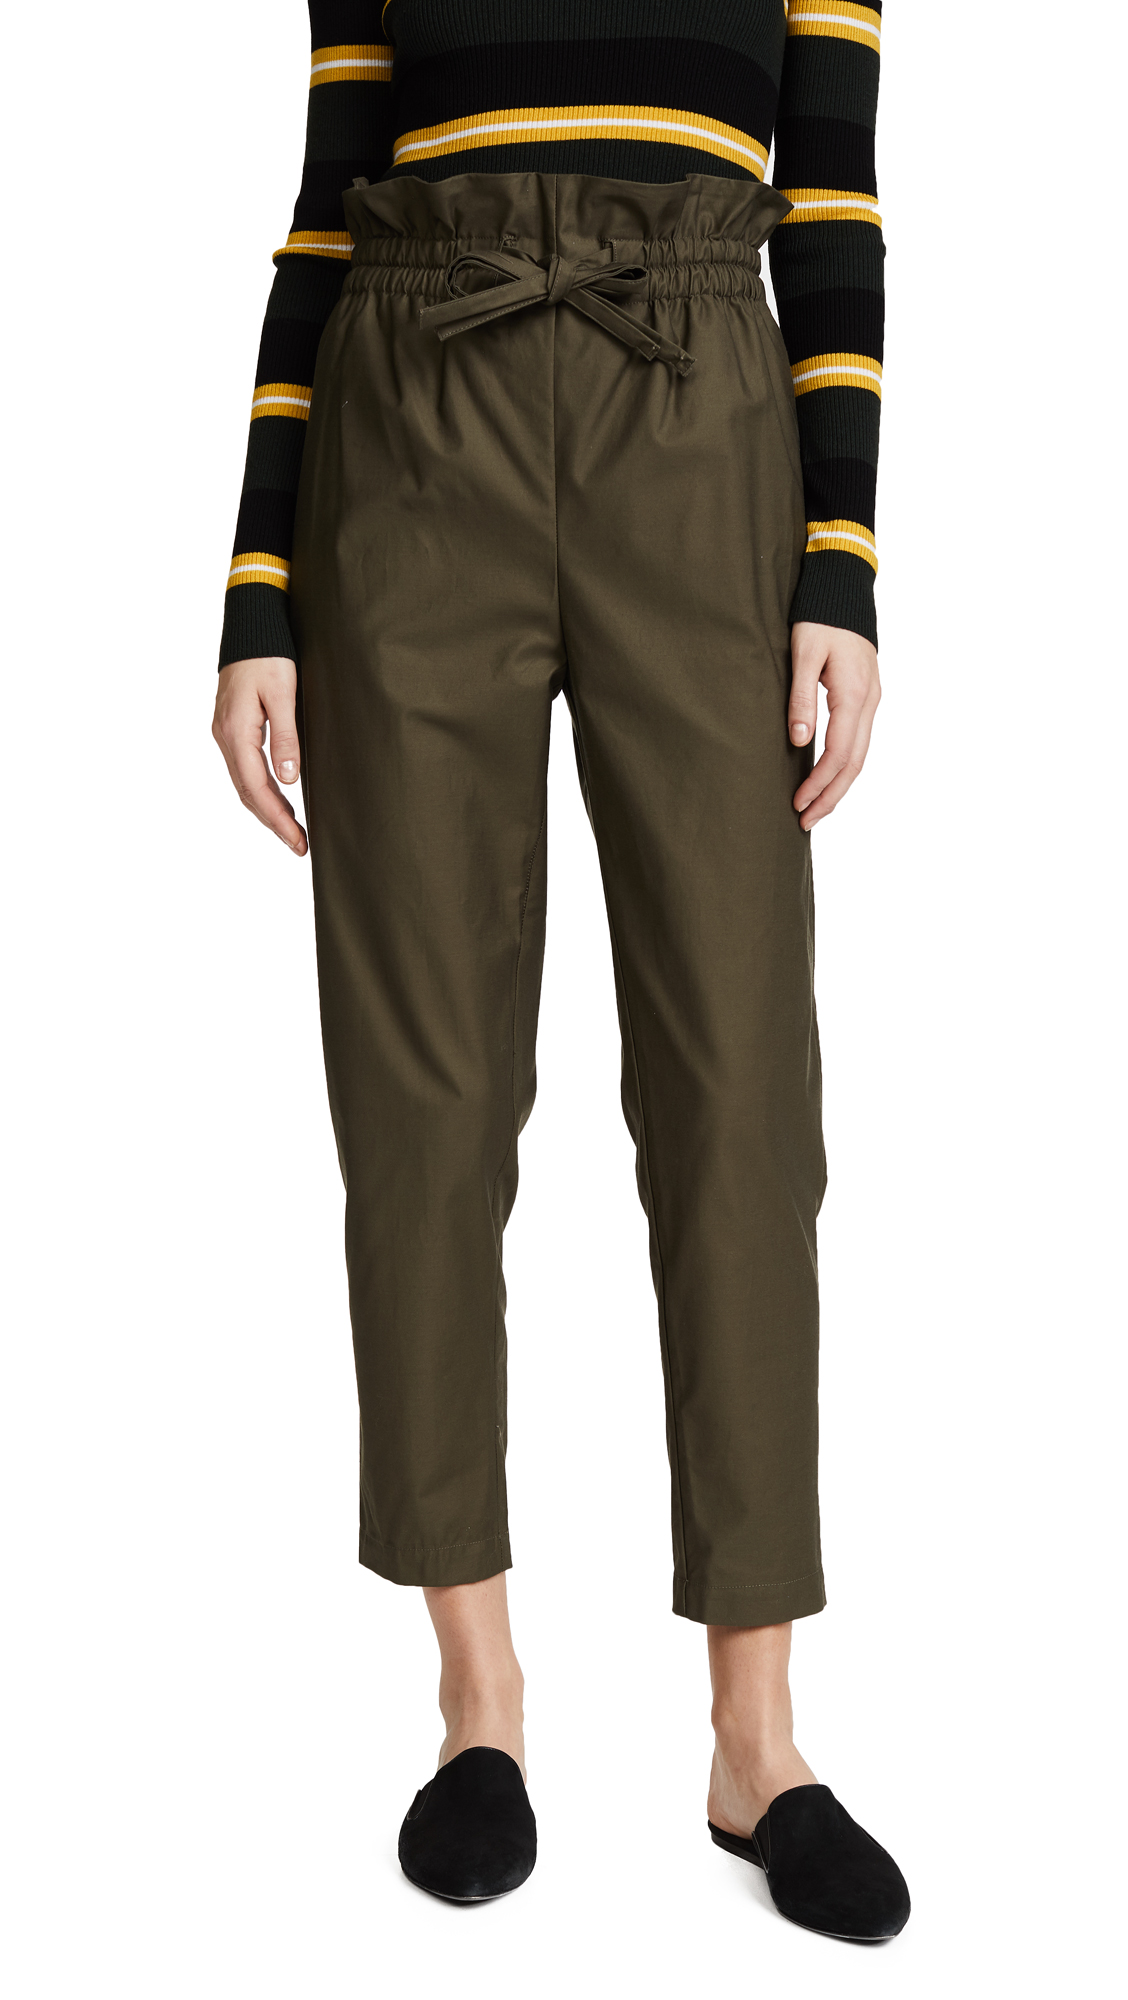 Emerson Thorpe Heidi Paper Bag Pants - Army